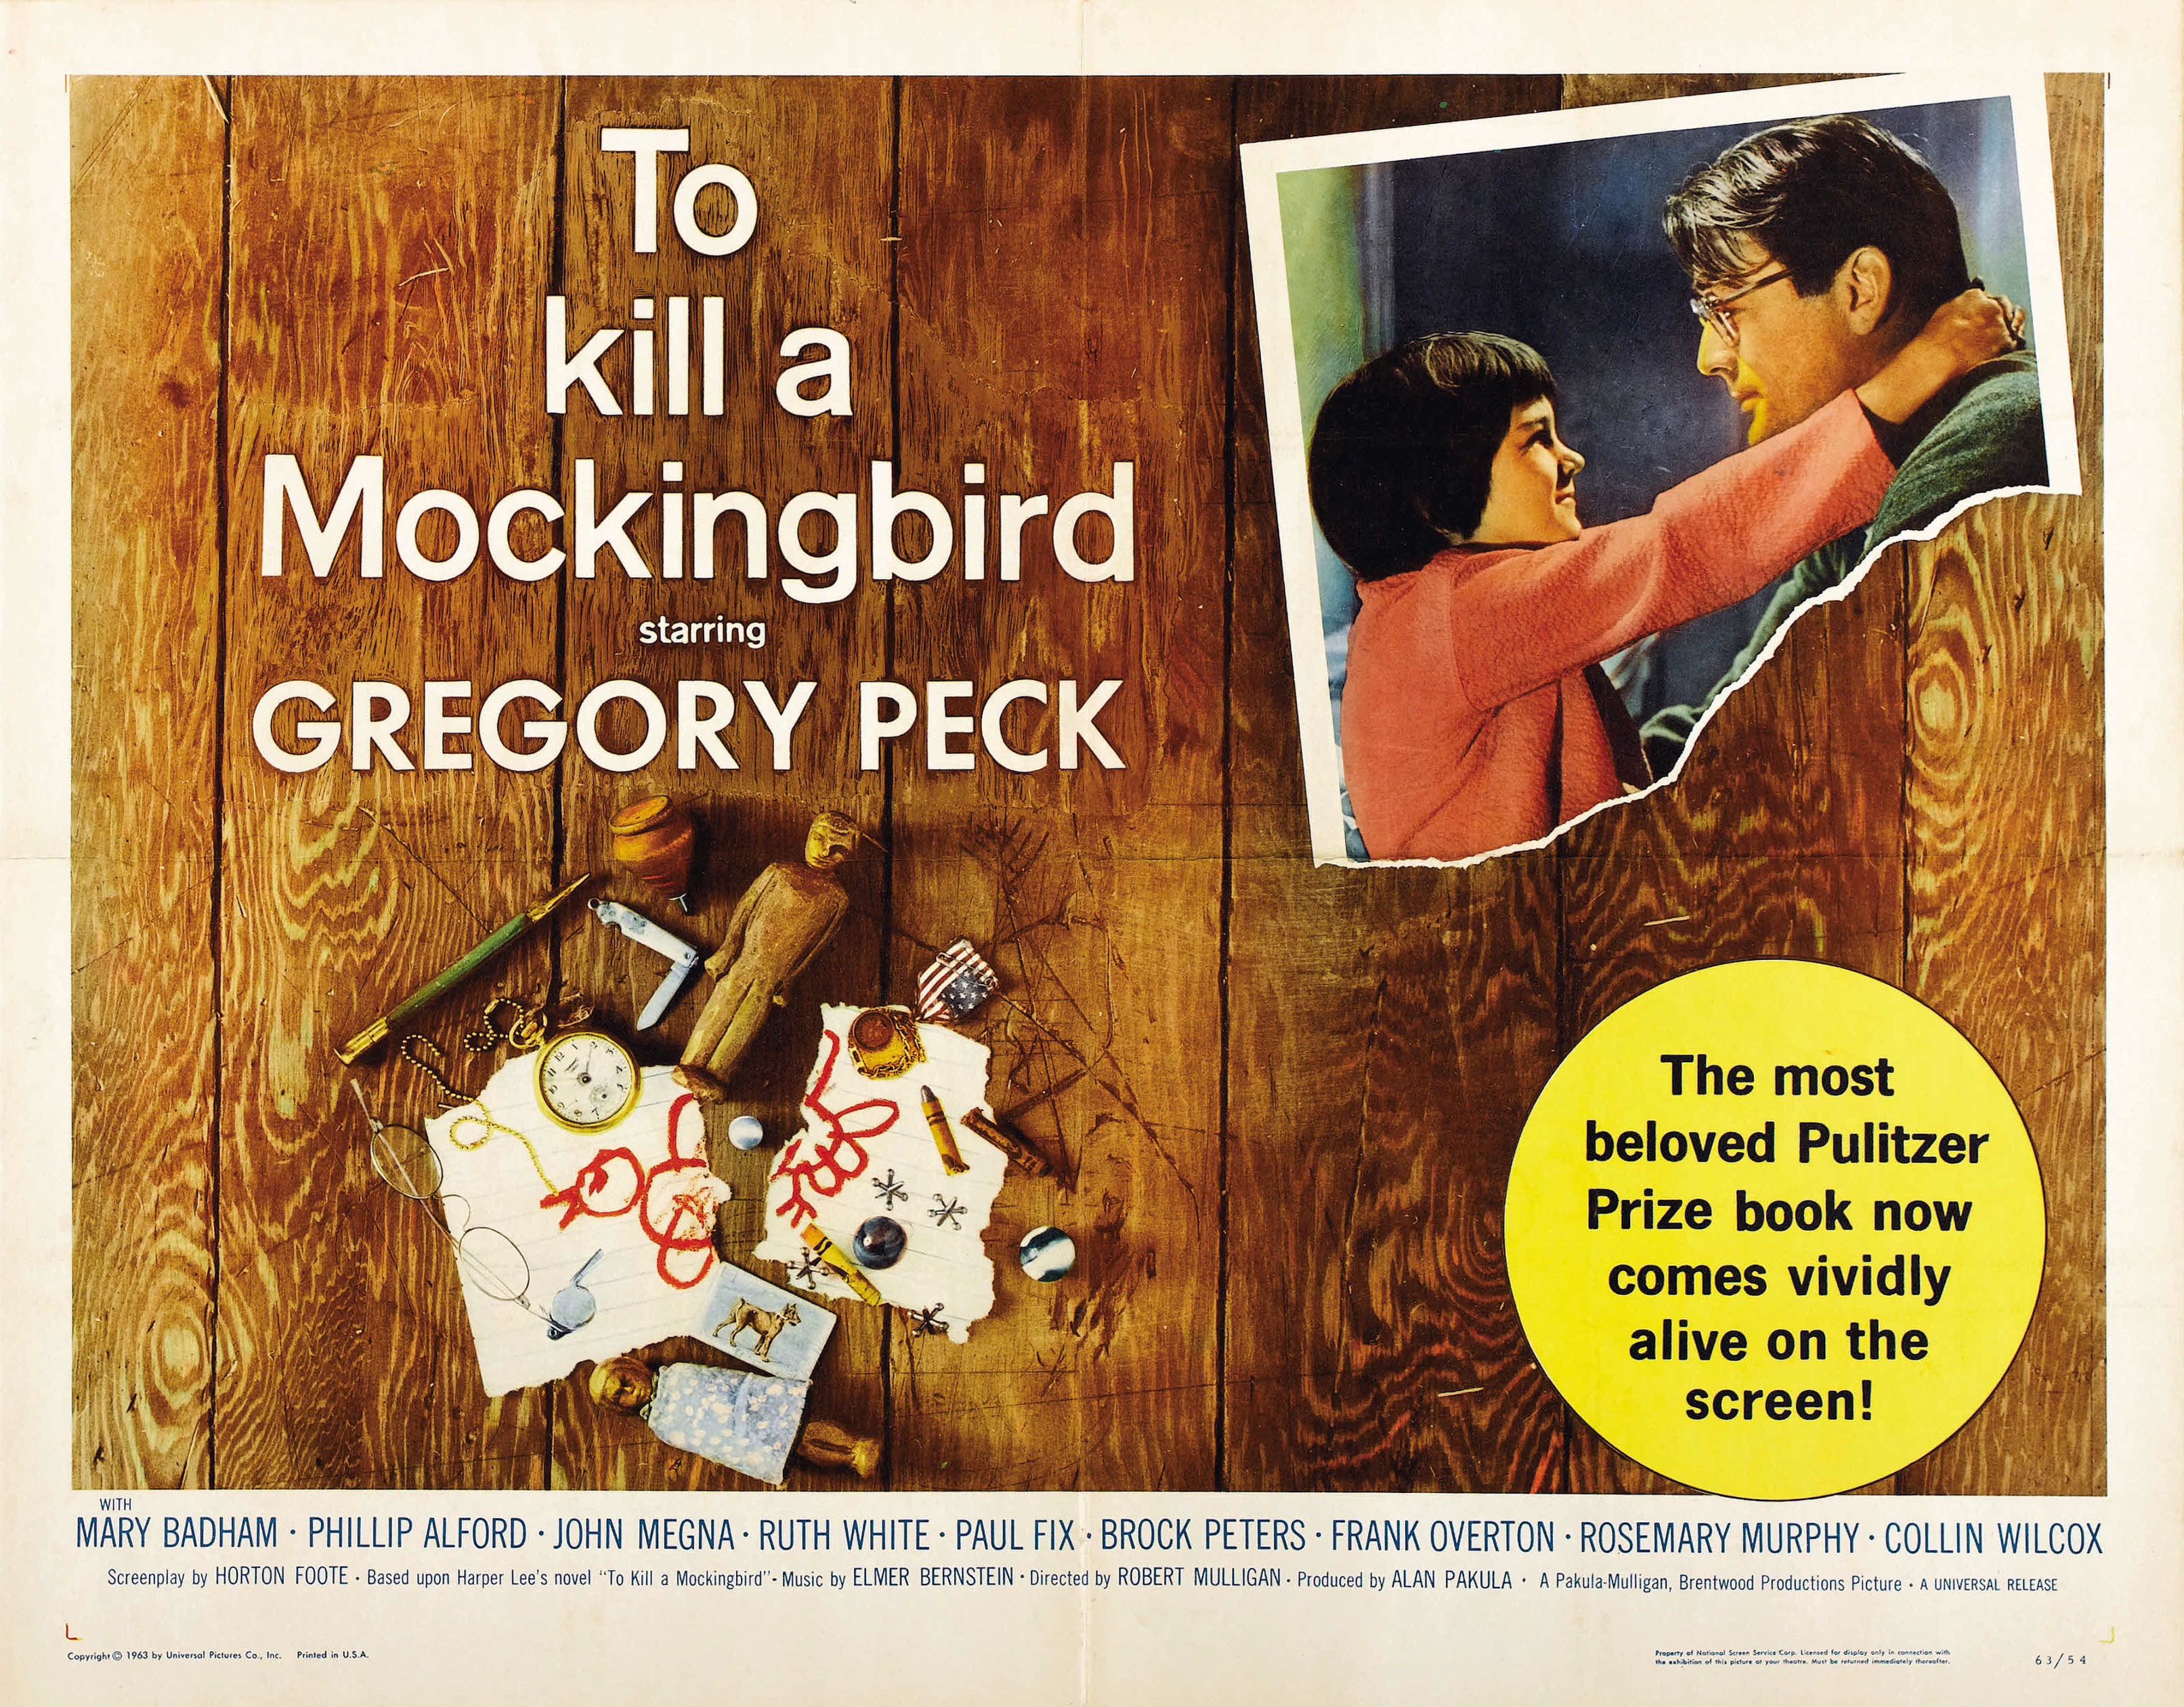 is to kill a mockingbird a To kill a mockingbird essay in the novel to kill a mockingbird a major theme is the loss of innocence whether from emotional abuse, racial prejudice or learning, boo .